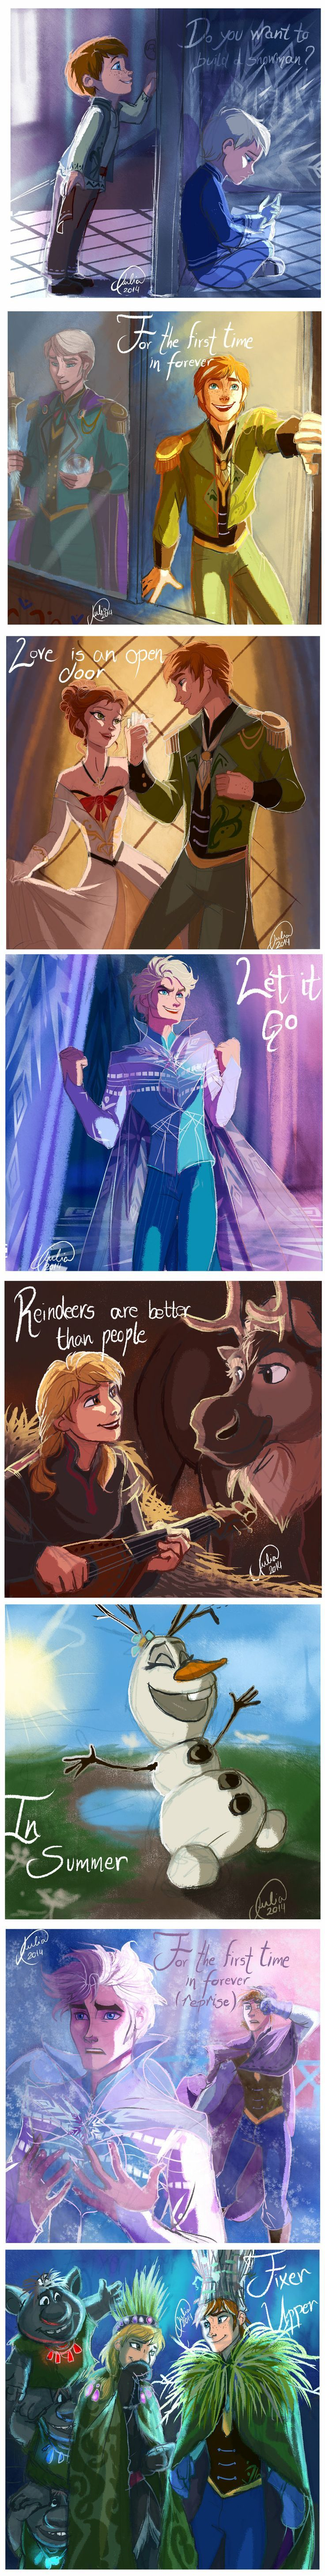 Gender Swapped Frozen